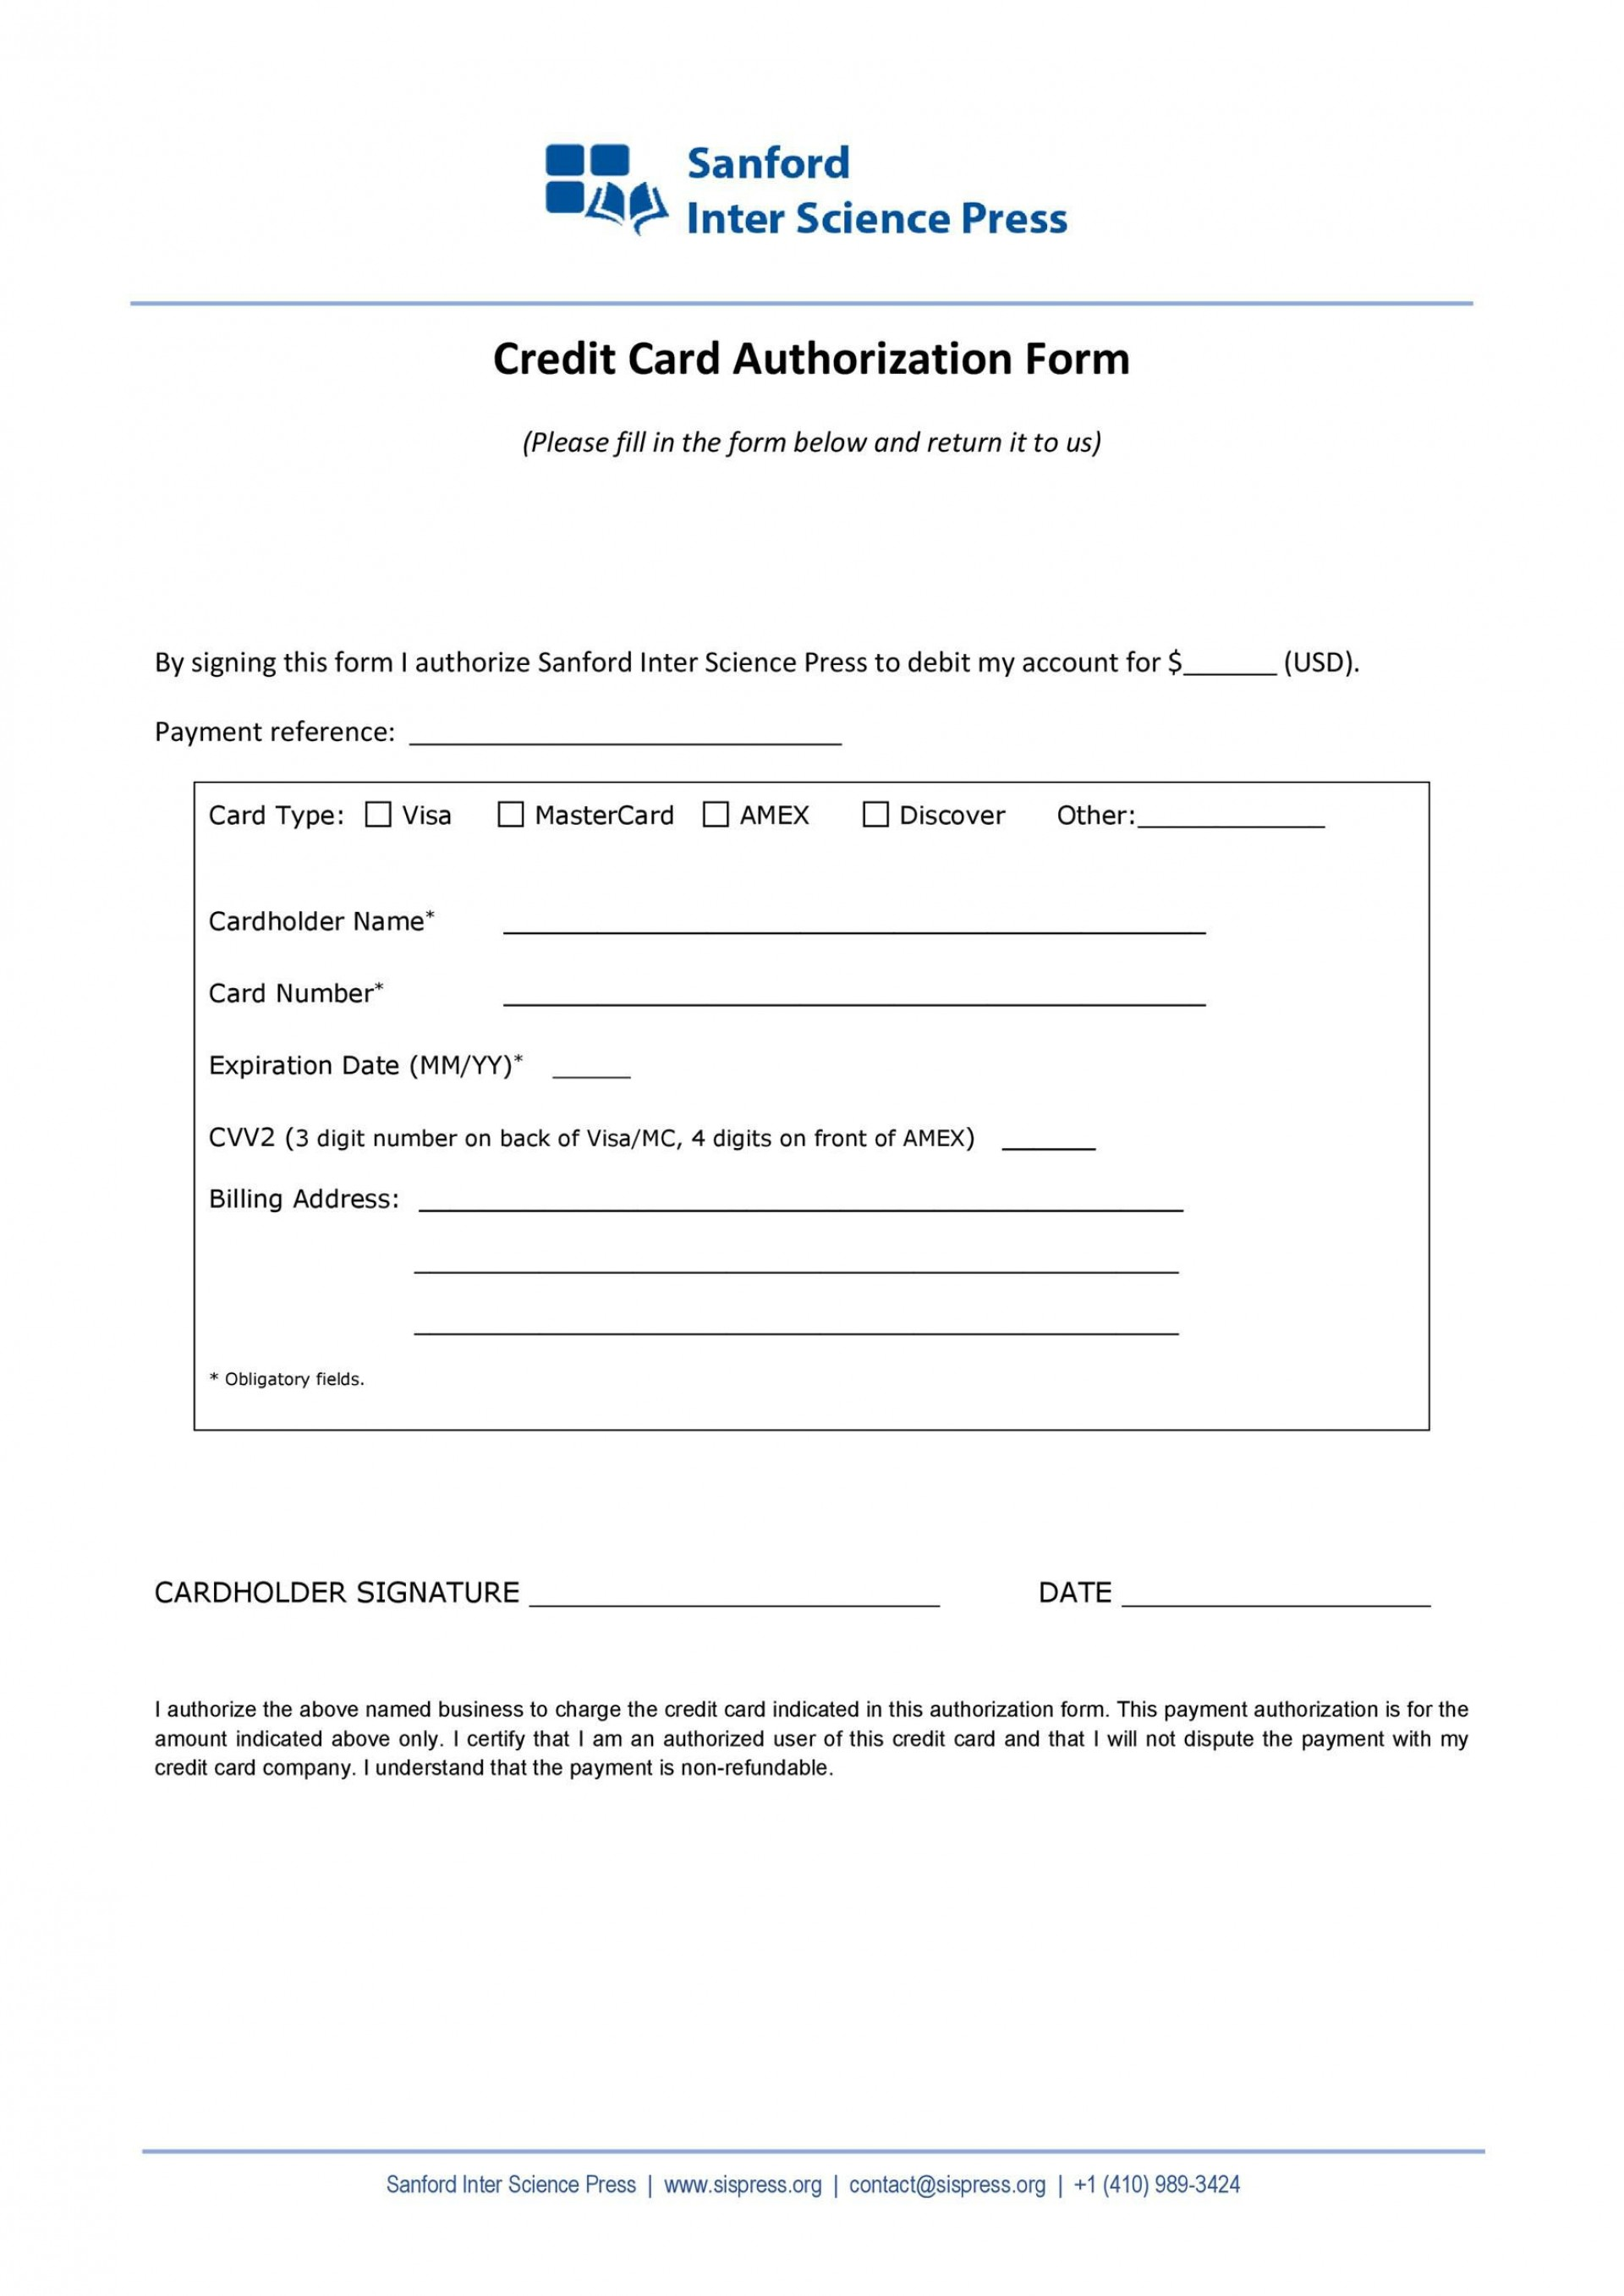 004 Frightening Credit Card Payment Form Template Pdf Design  Authorization1920